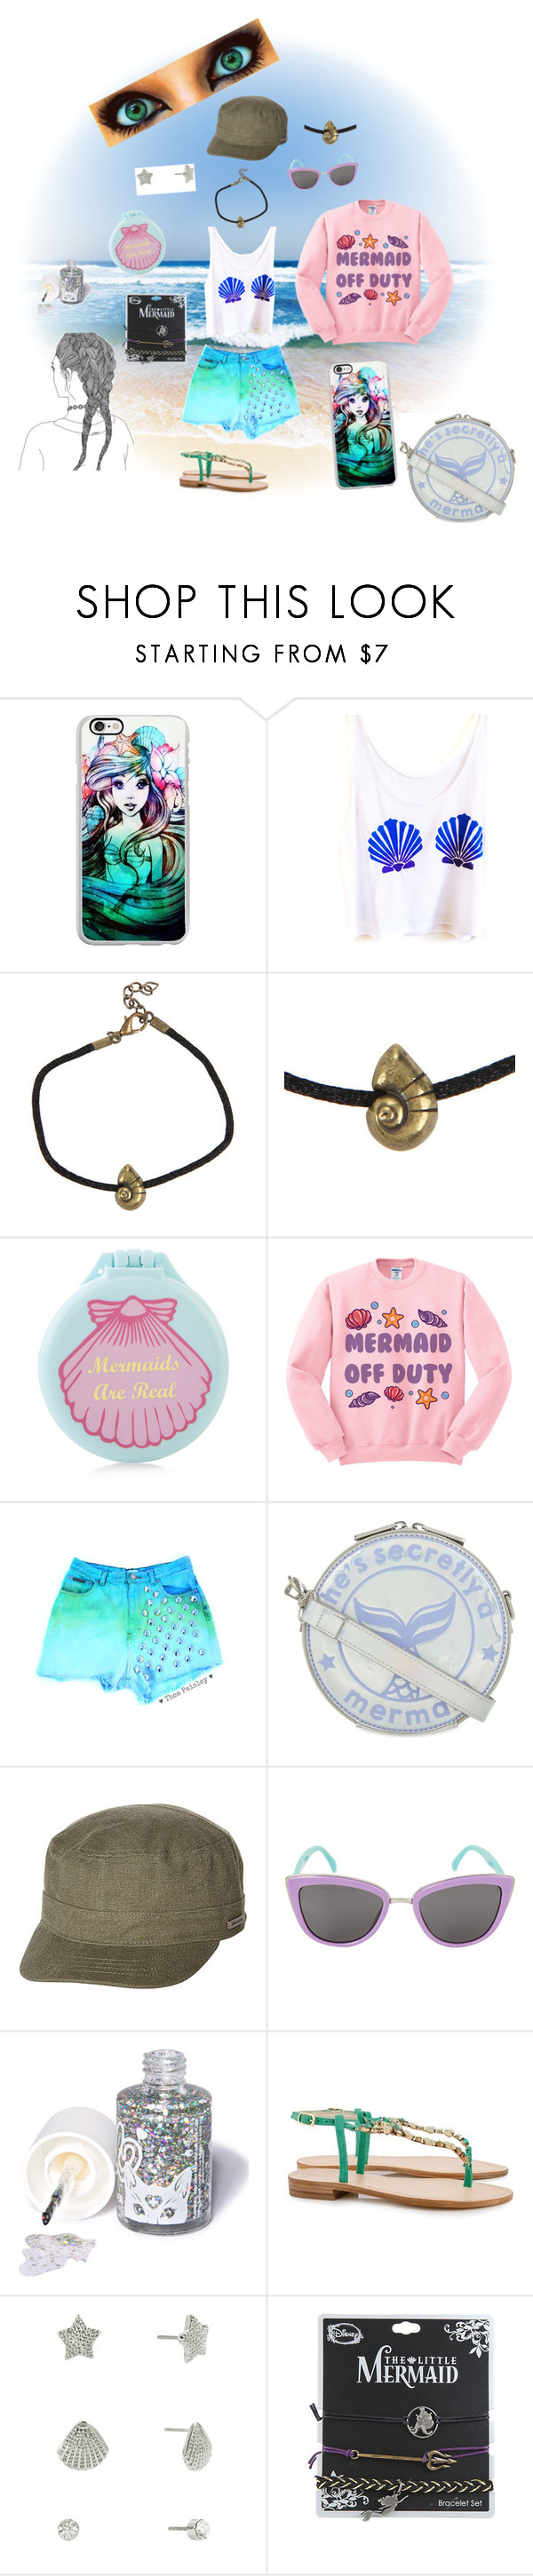 """Mermaid Beach Babe"" by flyawayangel337 ❤ liked on Polyvore featuring Samsung, Disney, Accessorize, Skinnydip, Billabong, Sugarpill and JustFab"